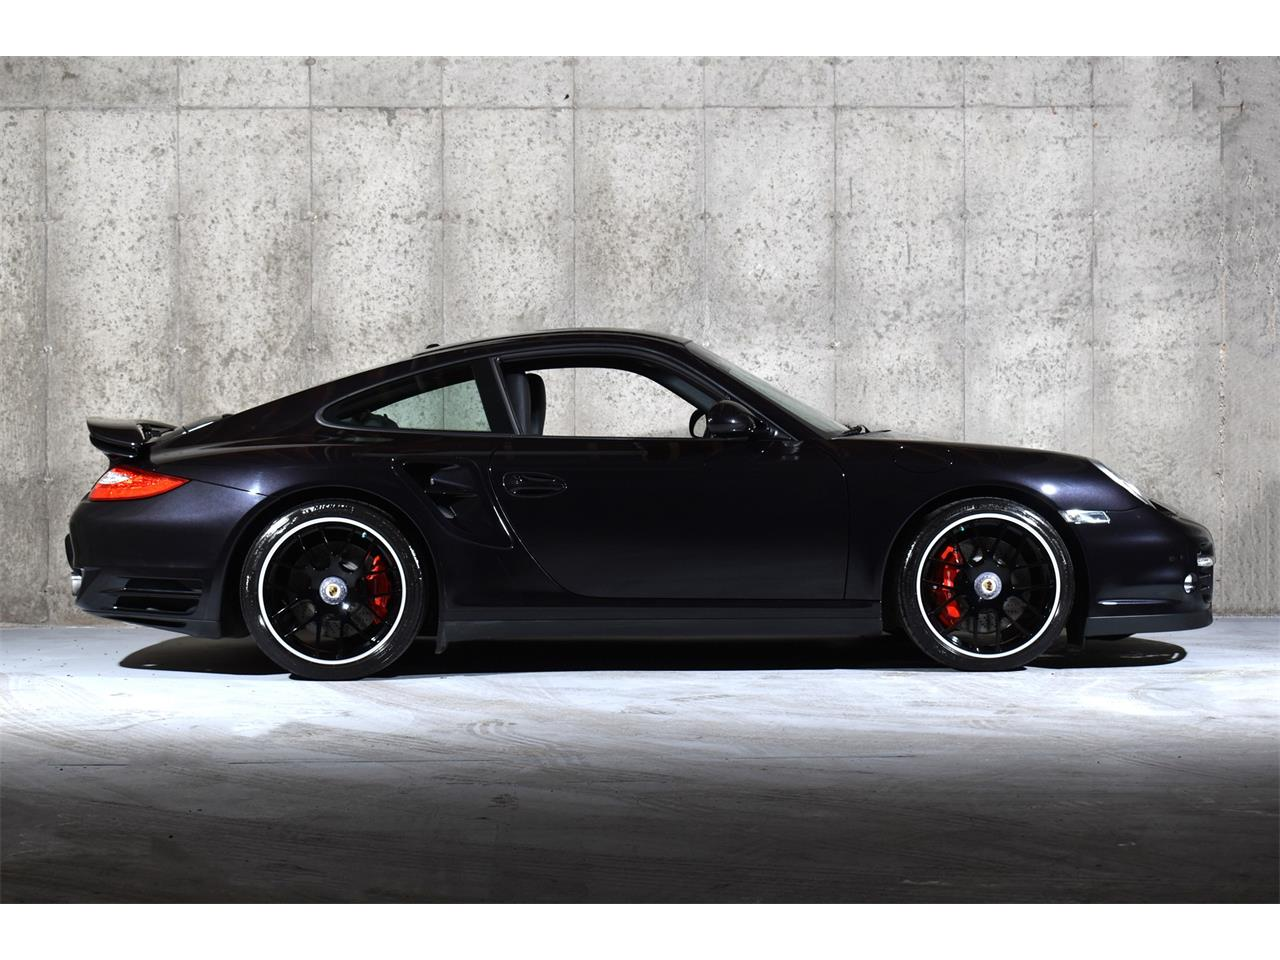 2011 Porsche 911 for sale in Valley Stream, NY – photo 4